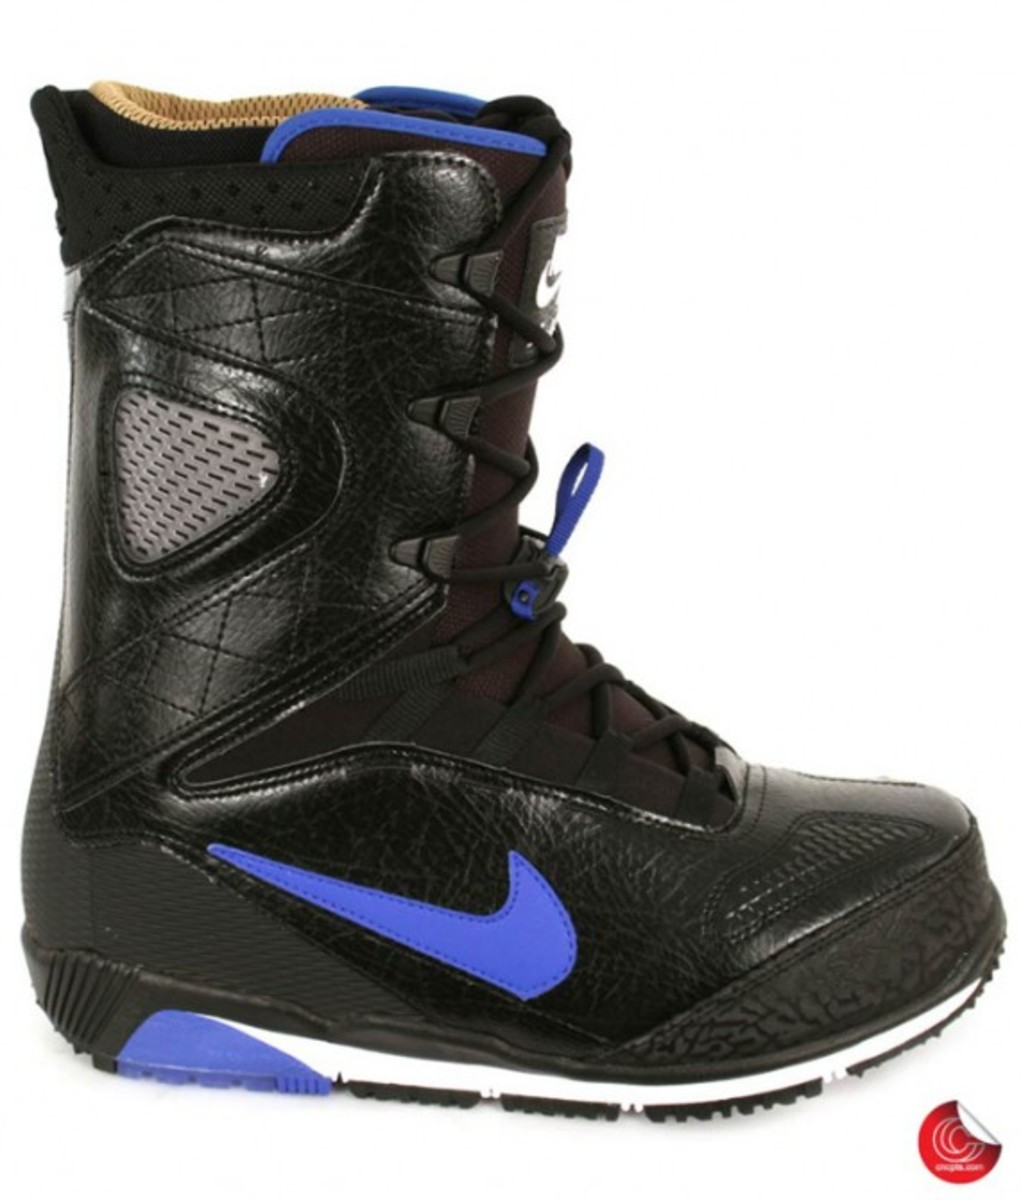 nike_snowboarding_boots_1